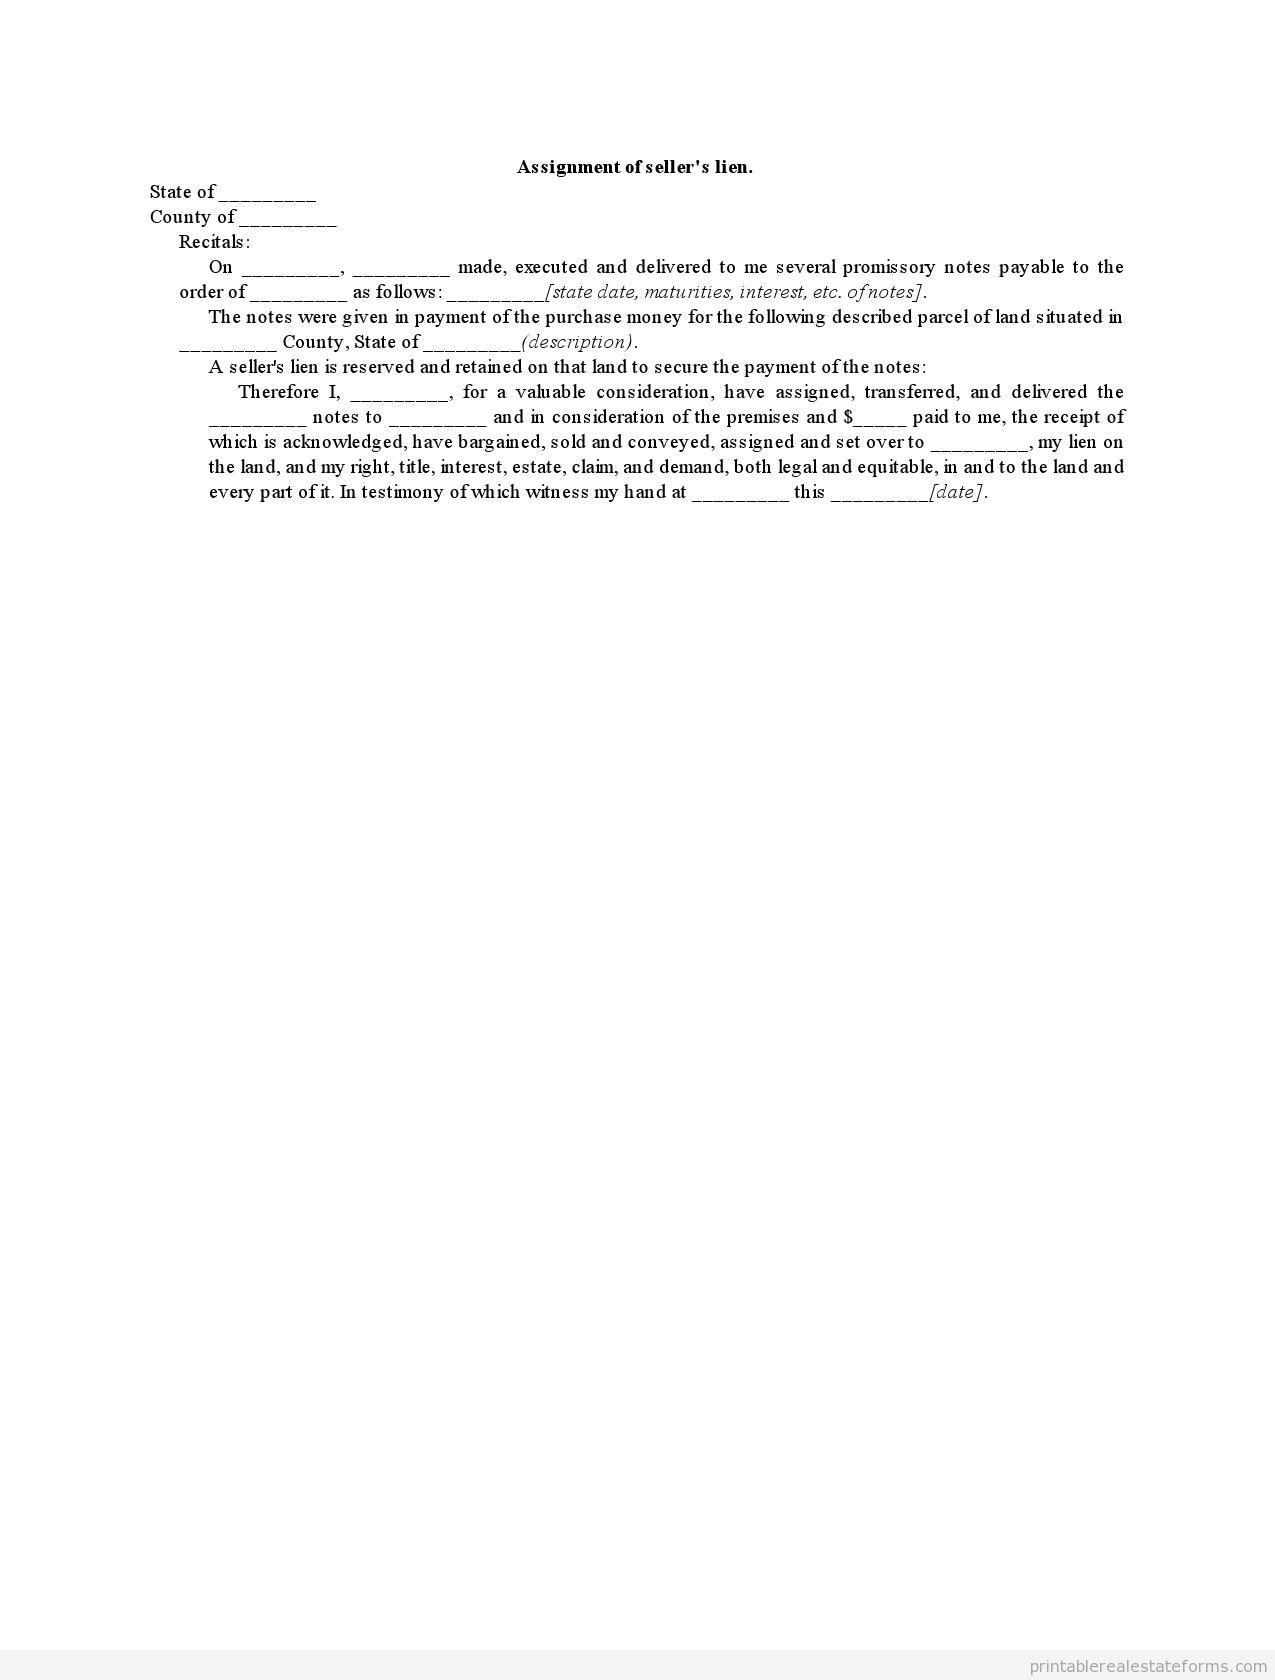 Sample Printable Assignment Of Sellers Lien Form  Sample Real